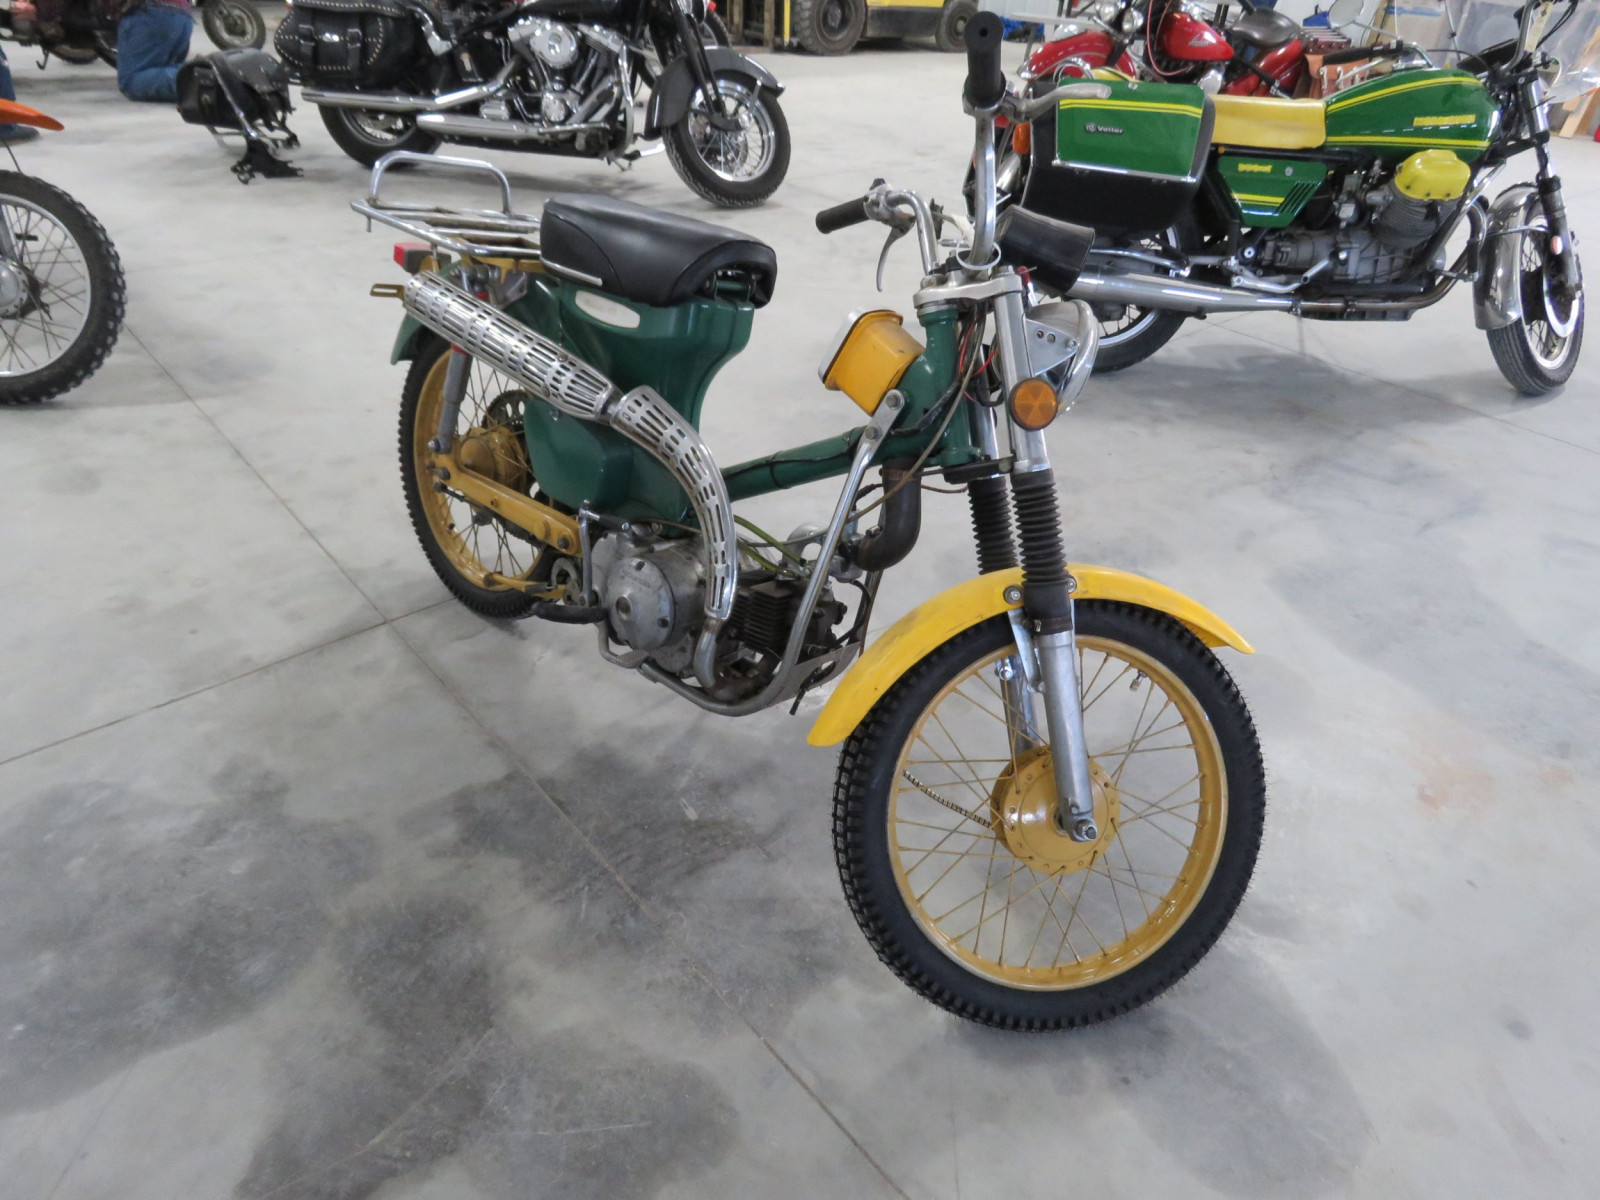 1965 Honda trail 90 Scooter - Image 1